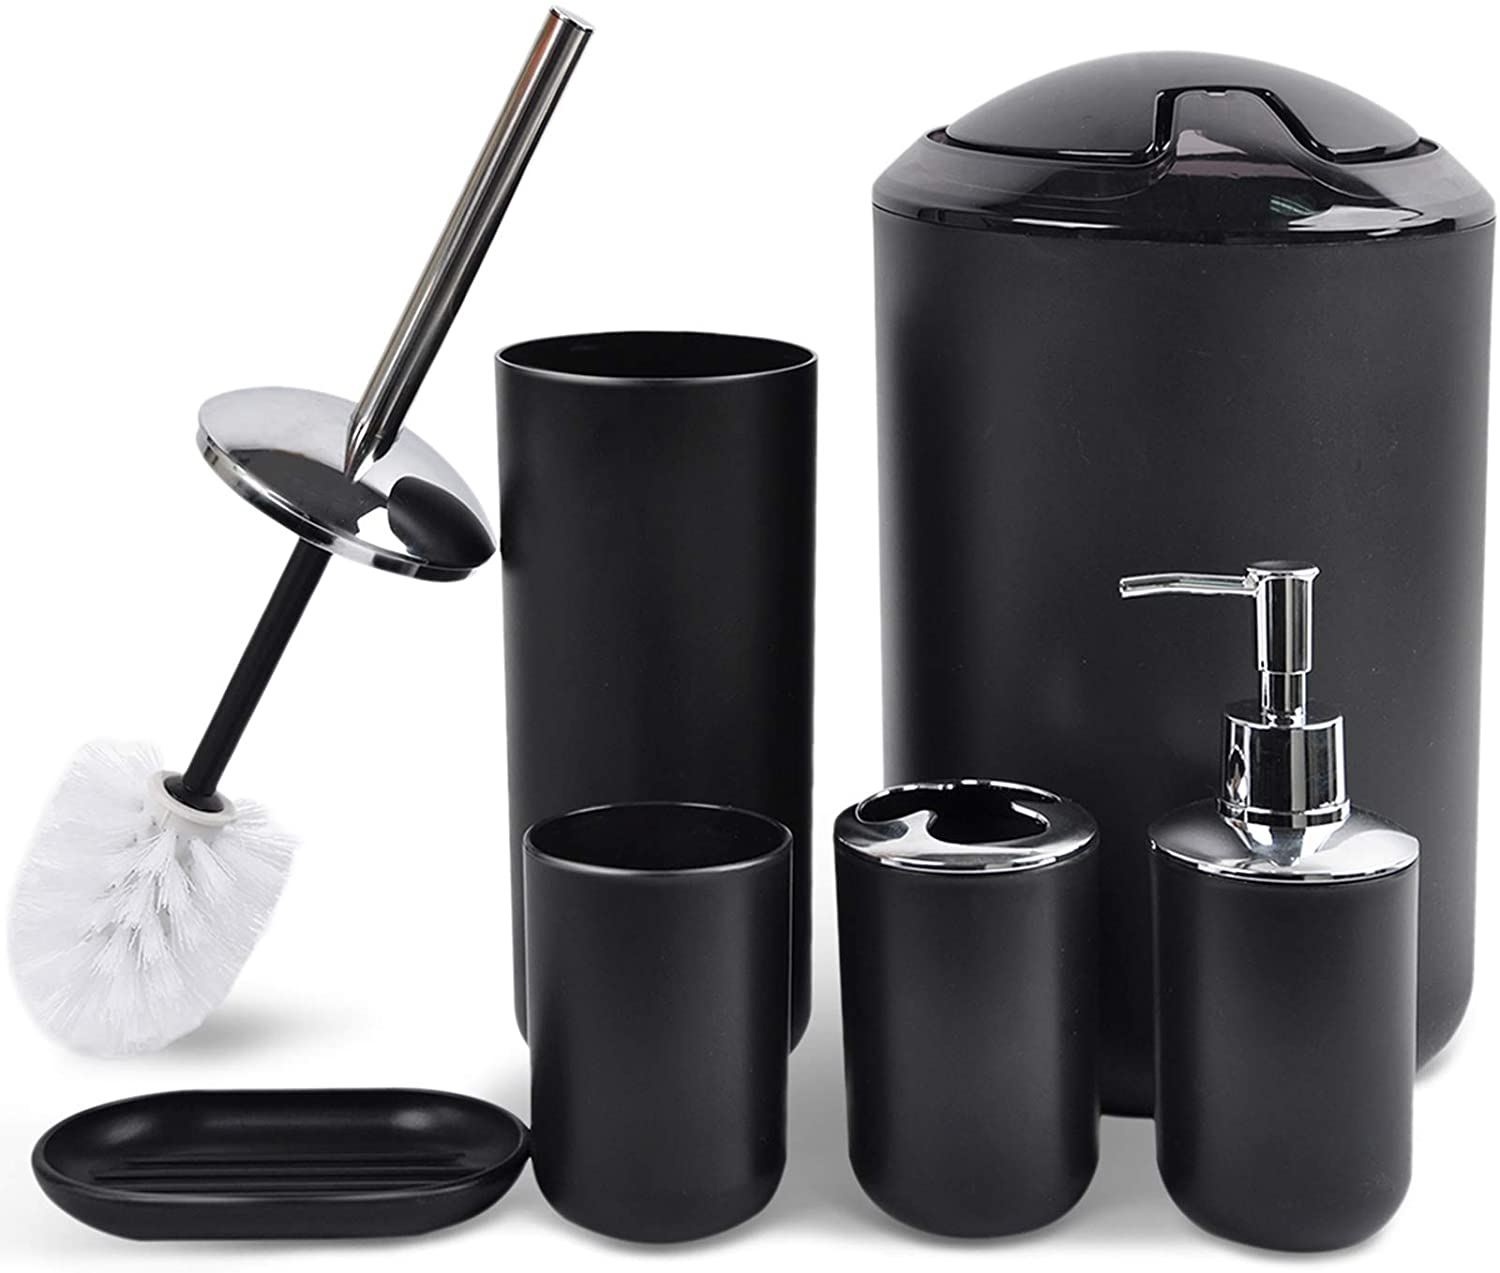 CERBIOR Bathroom Accessories Set 6 Piece Bath Ensemble Includes Soap Dispenser, Toothbrush Holder, Toothbrush Cup, Soap Dish for Decorative Countertop and Housewarming Gift, Black: Home & Kitchen